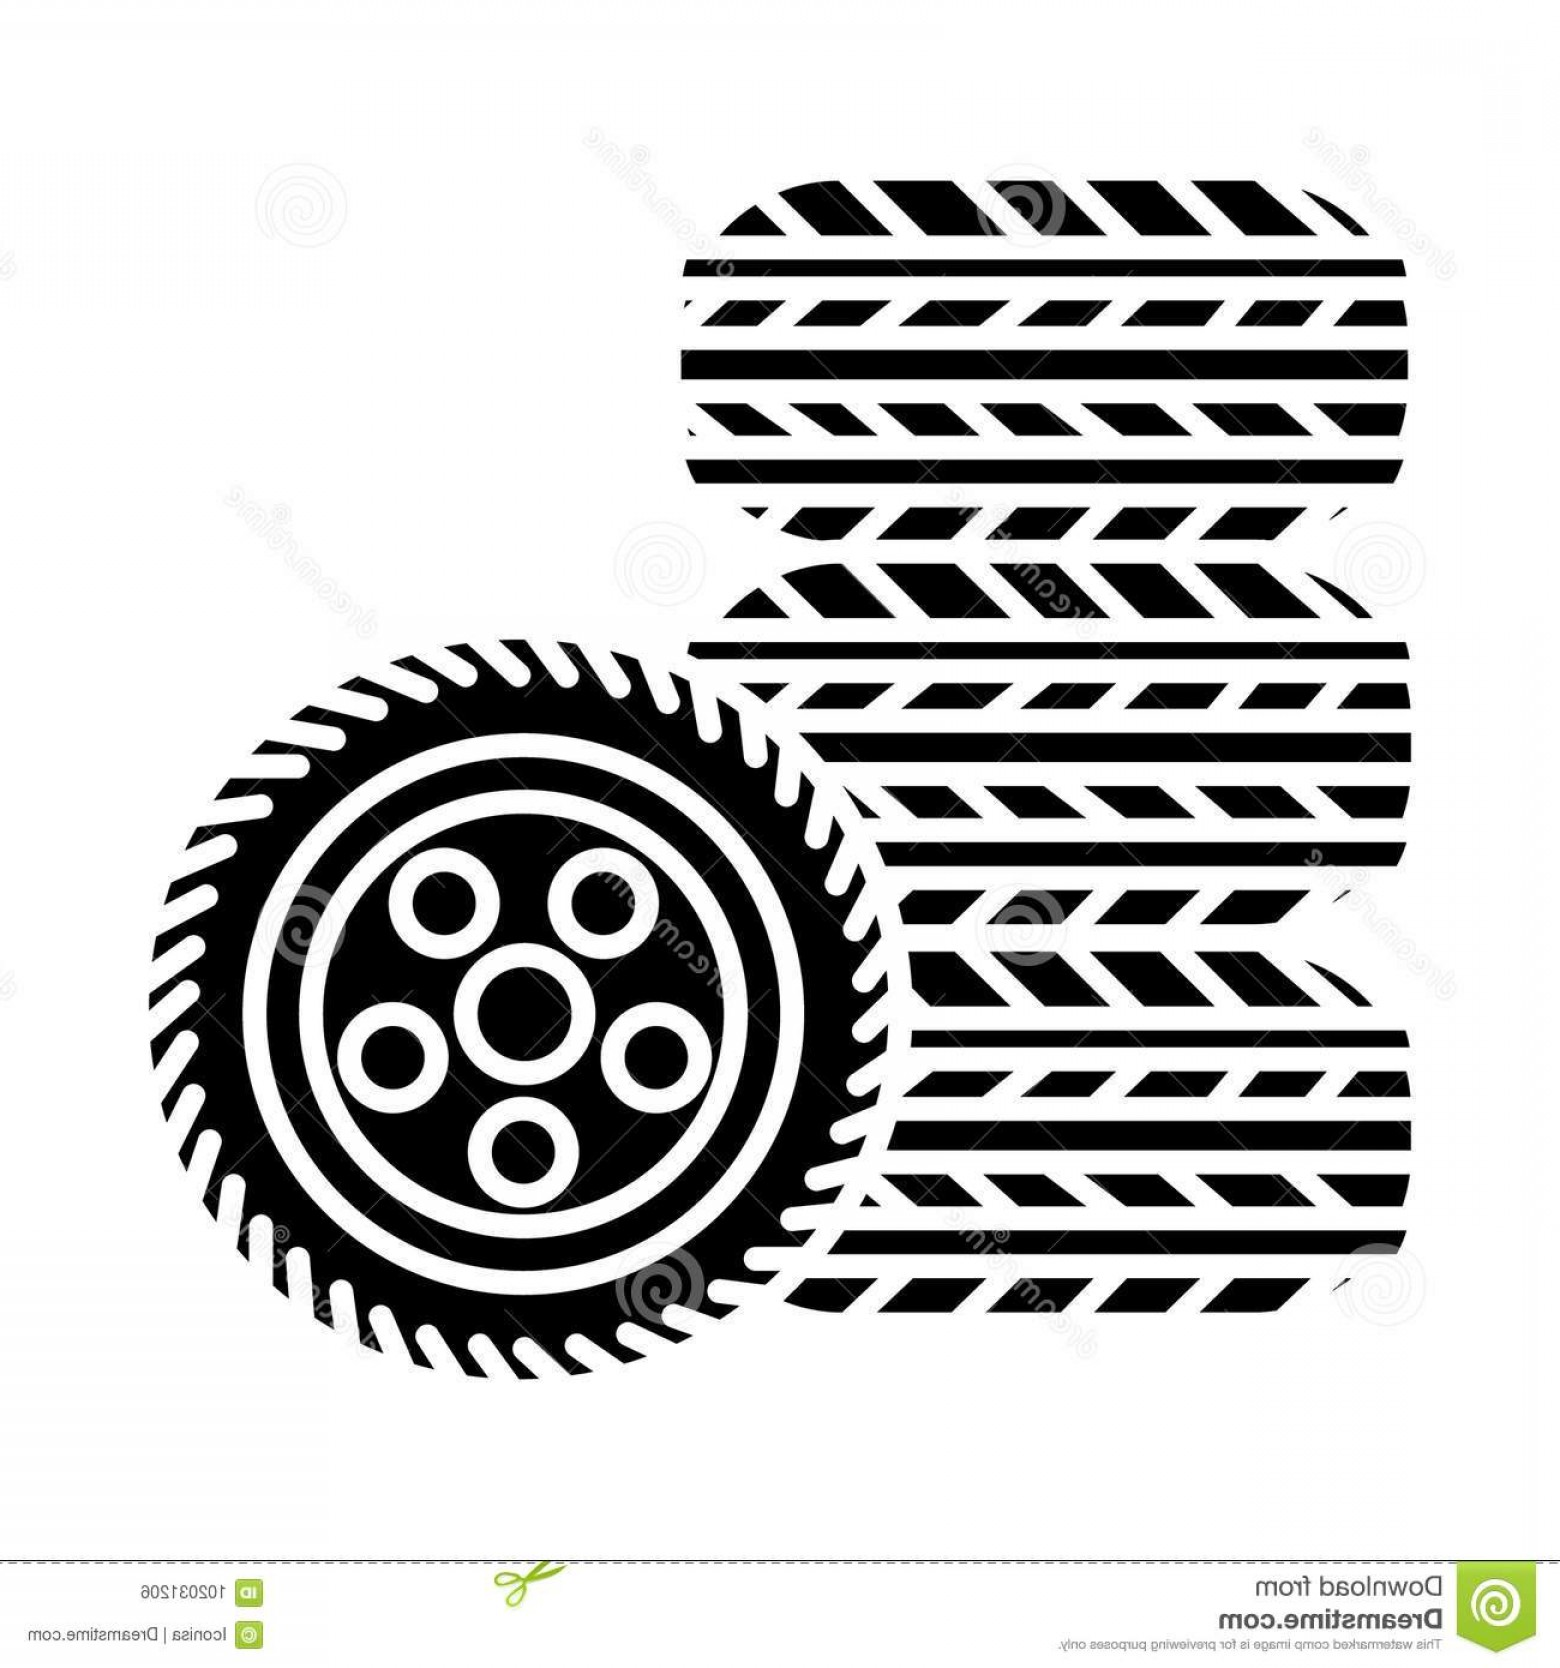 Tire Icon Vector: Tires Tire Service Icon Illustration Vector Sign Isolated Background Tires Tire Service Icon Vector Illustration Black Sign Image